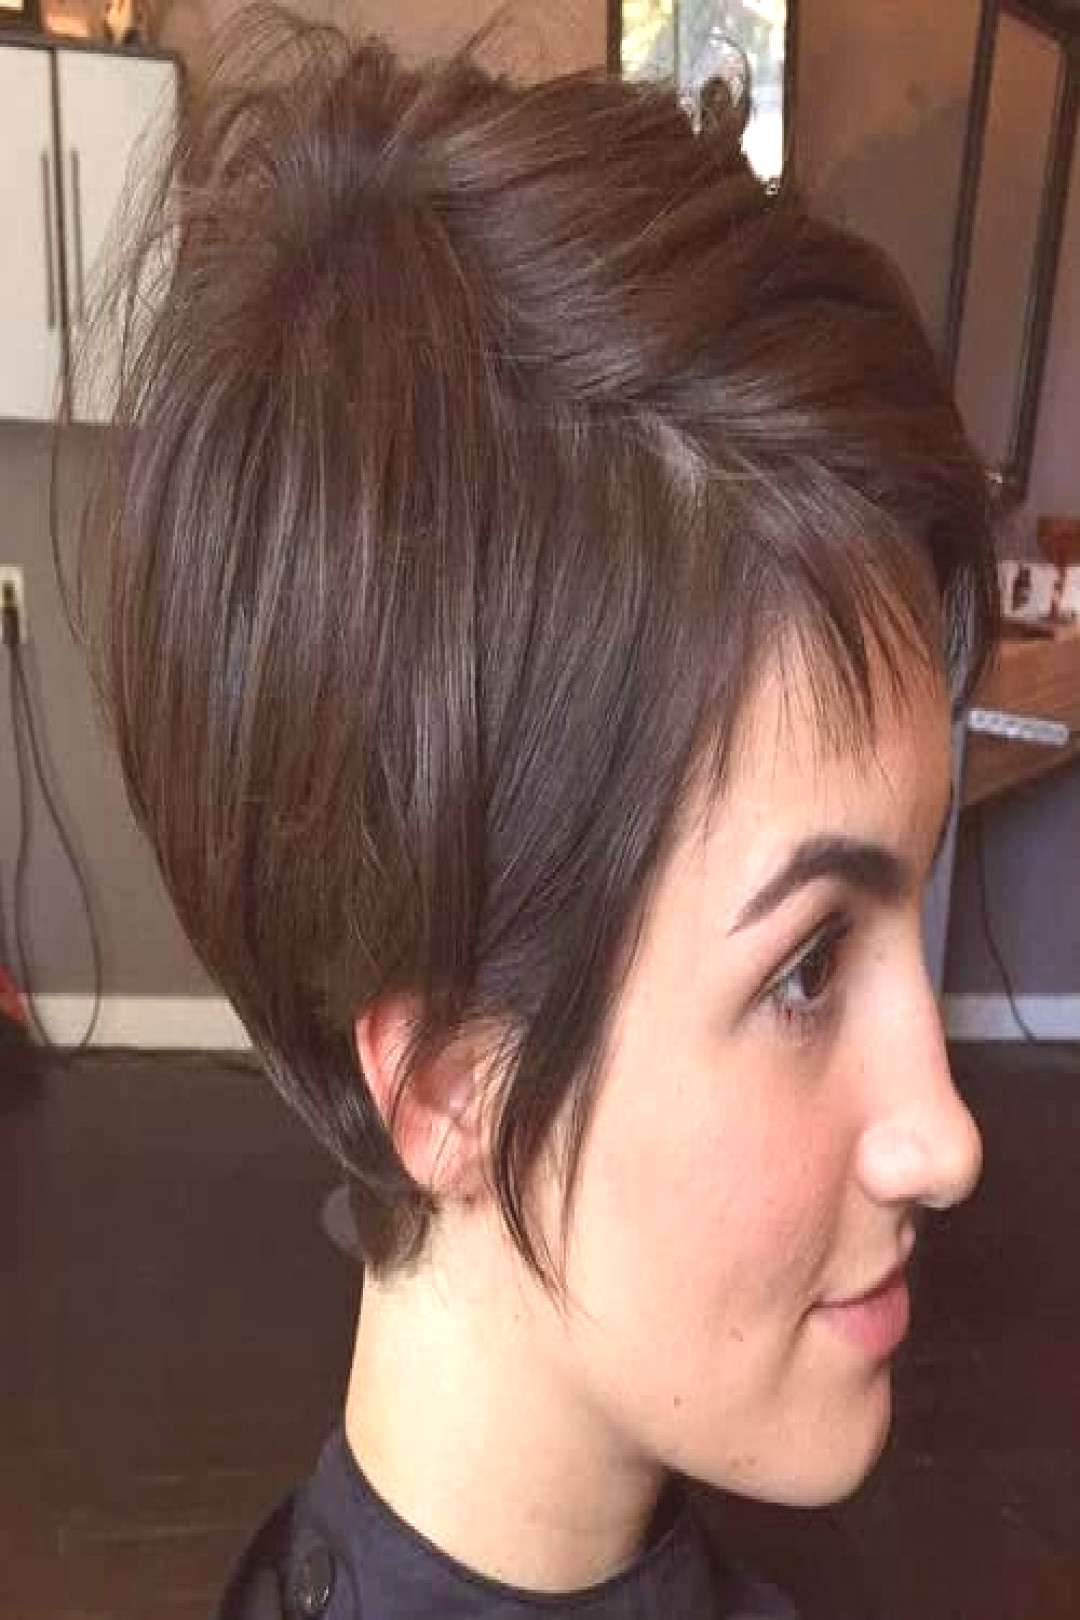 Pixie Cuts - Edgy, Shaggy, Spiky Pixie Cuts You Will Love   Love Ambie